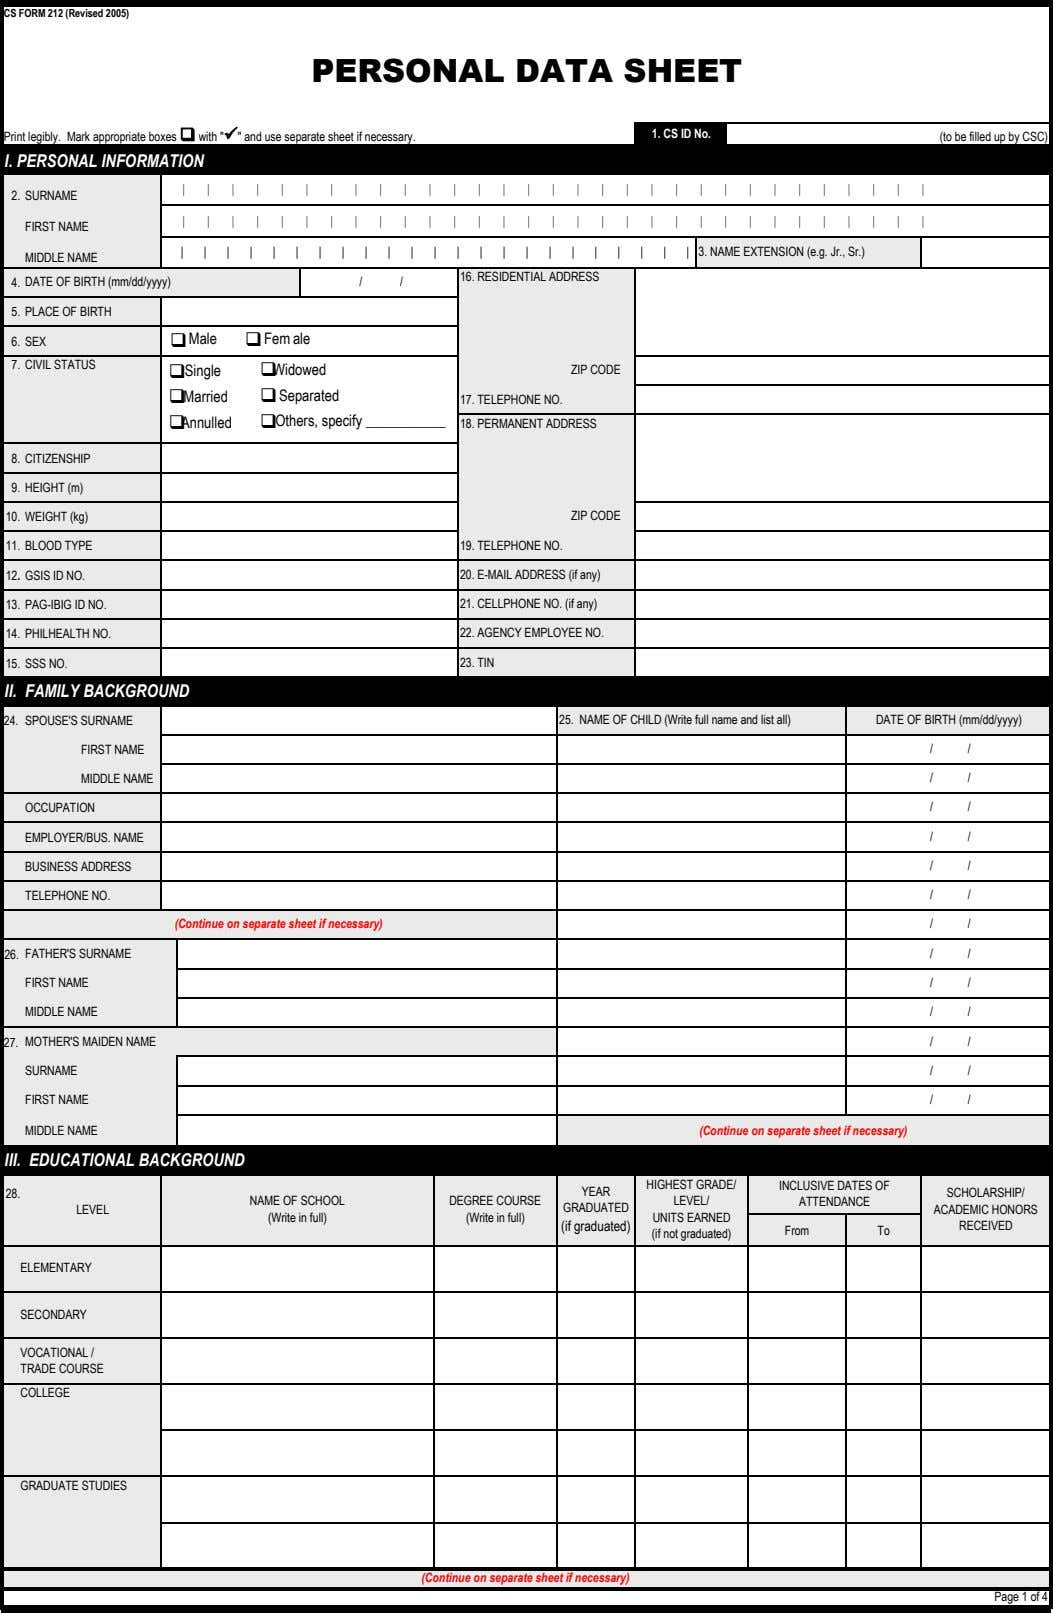 CS FORM 212 (Revised 2005) PERSONAL DATA SHEET Print legibly. Mark appropriate boxes q with